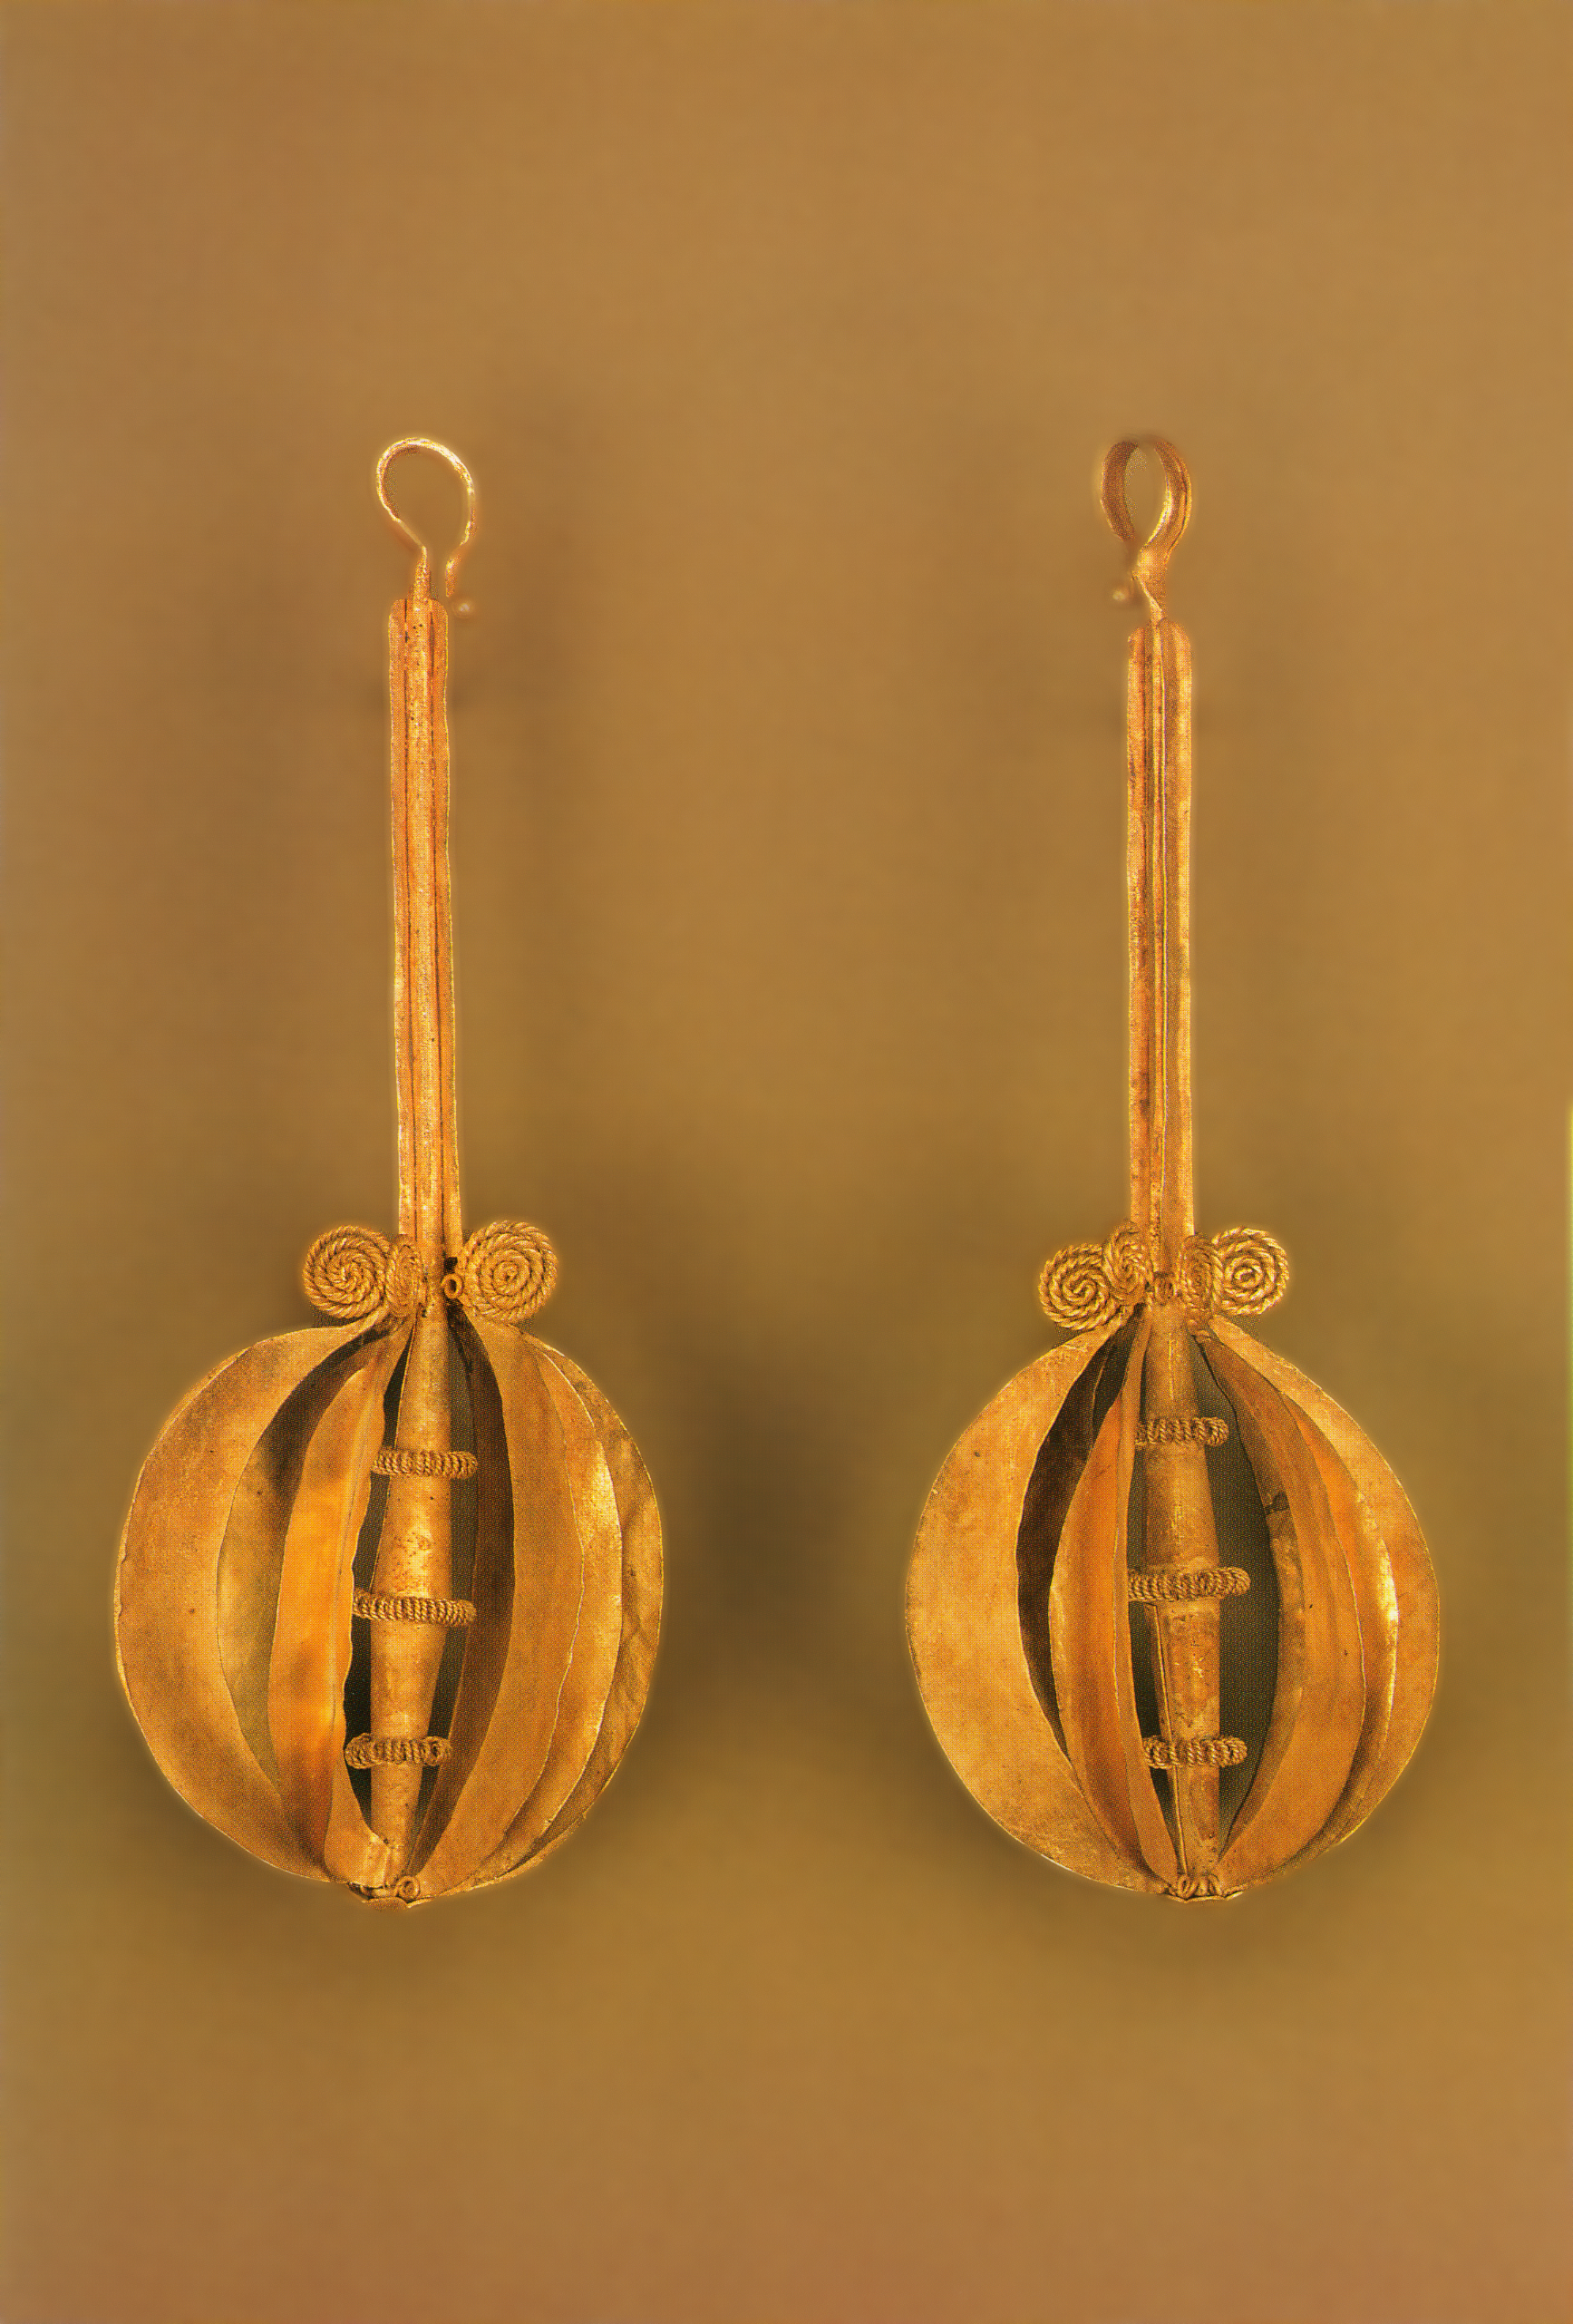 Pair of beautiful gold ear ornaments worn by noble women in South Nias. (Nias Tribal Treasures: plate 41, Delft 1990)